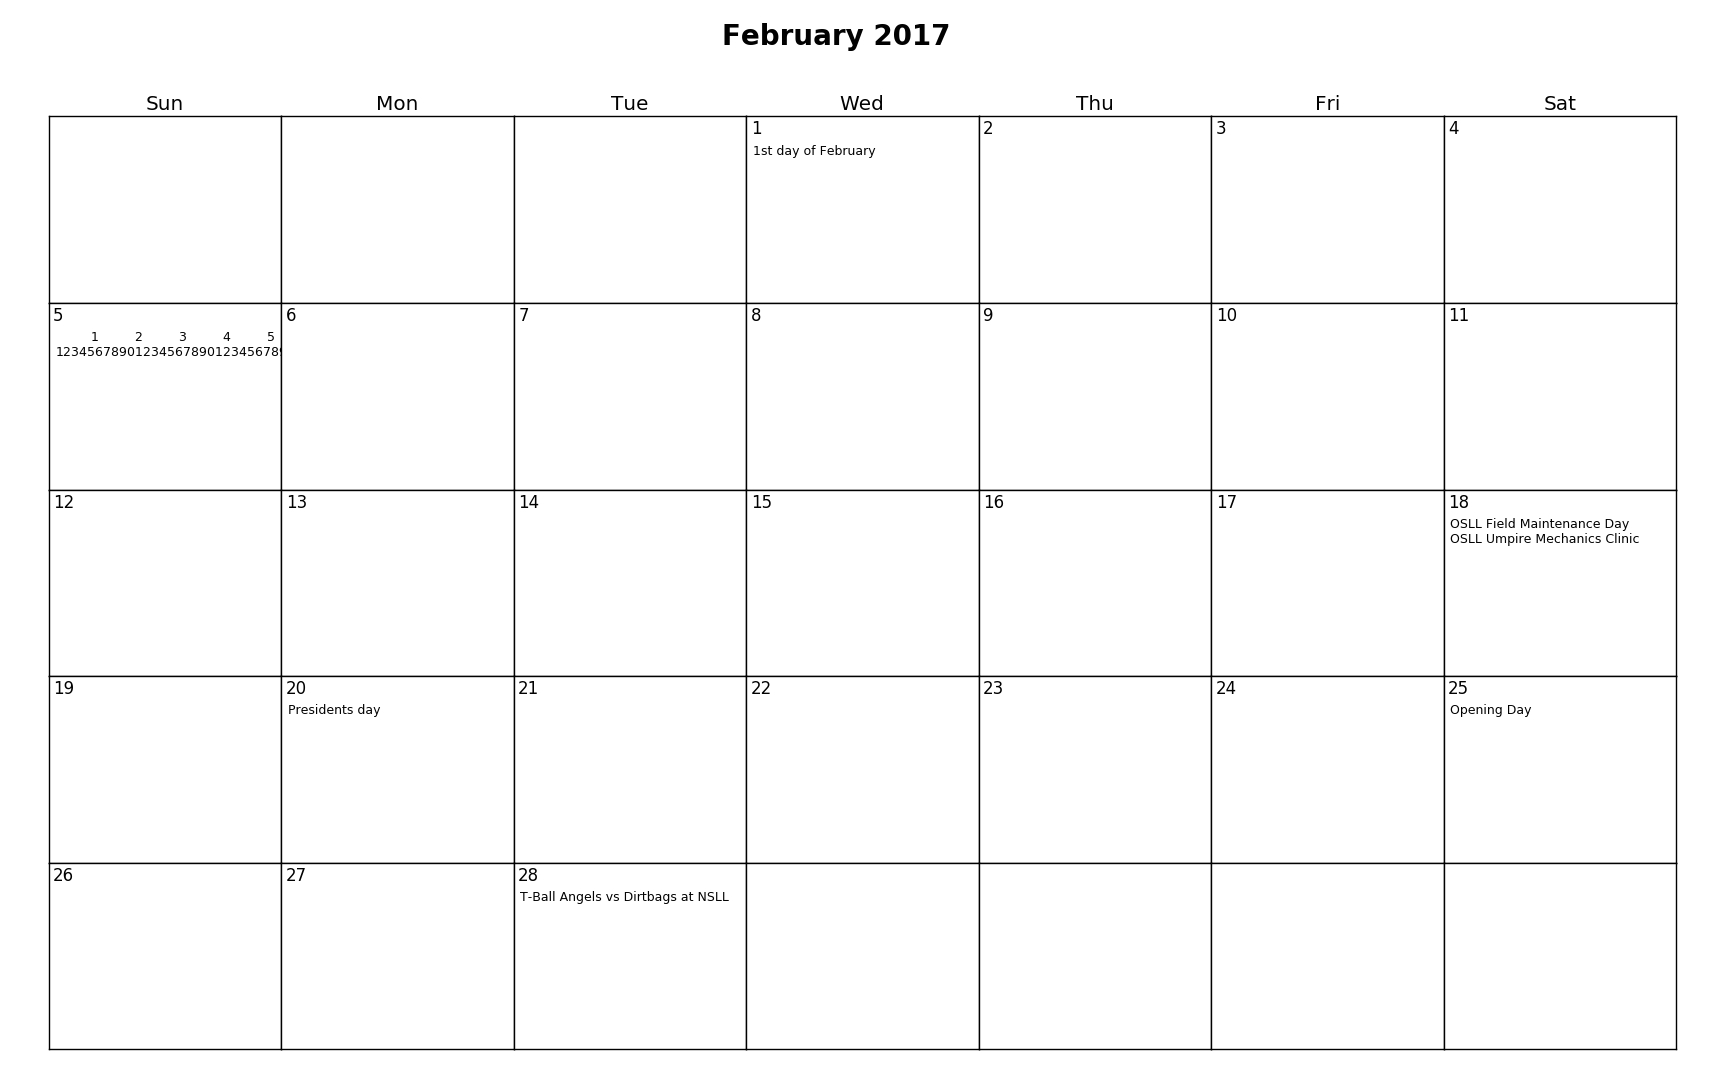 Create A One Month Calendar With Events On It In Python